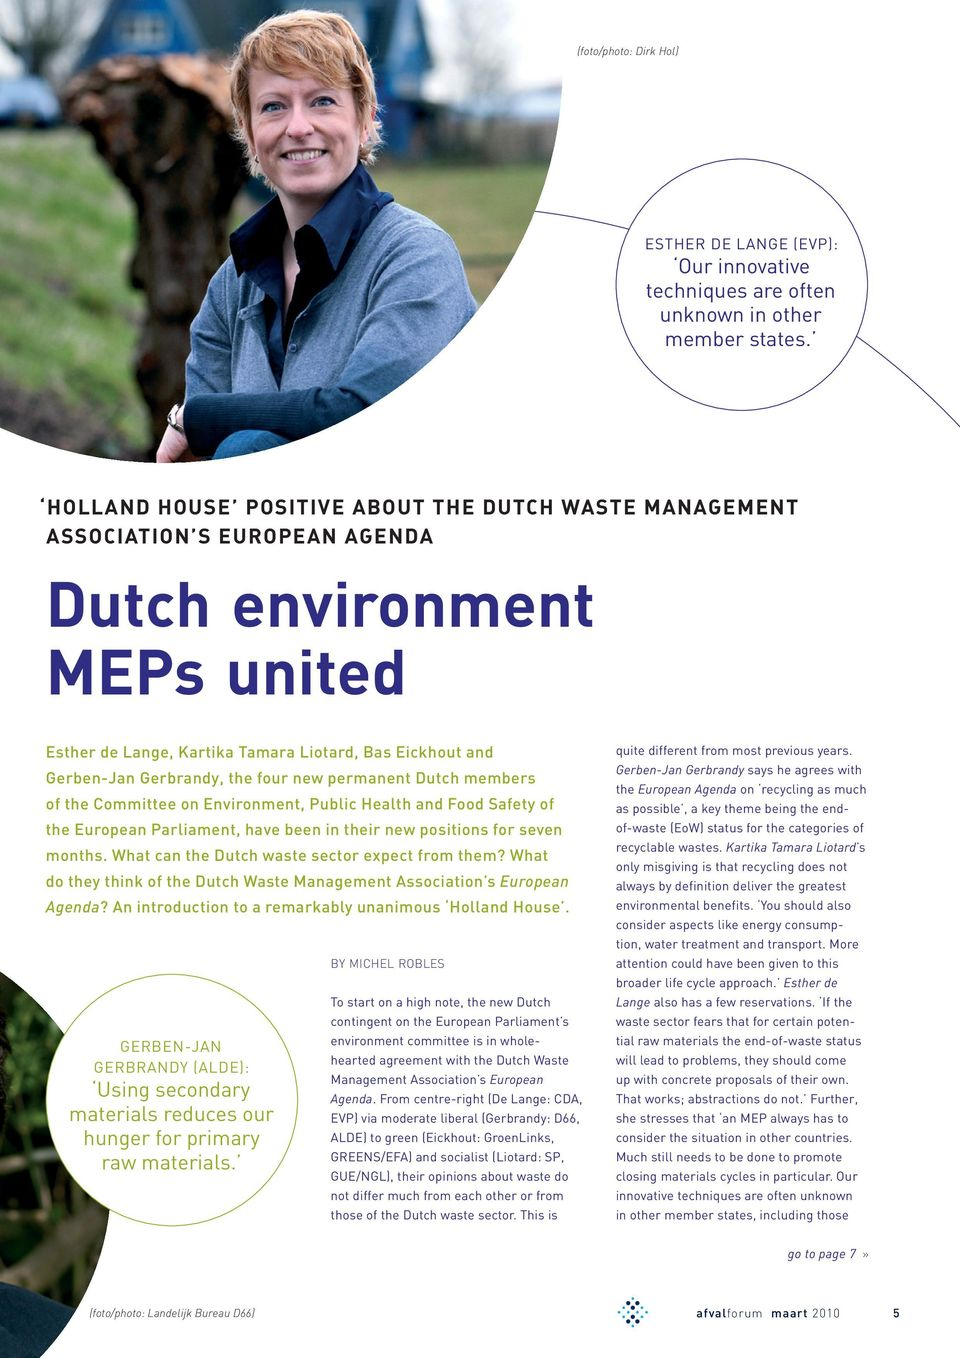 four new permanent Dutch members of the Committee on Environment, Public Health and Food Safety of the European Parliament, have been in their new positions for seven months.